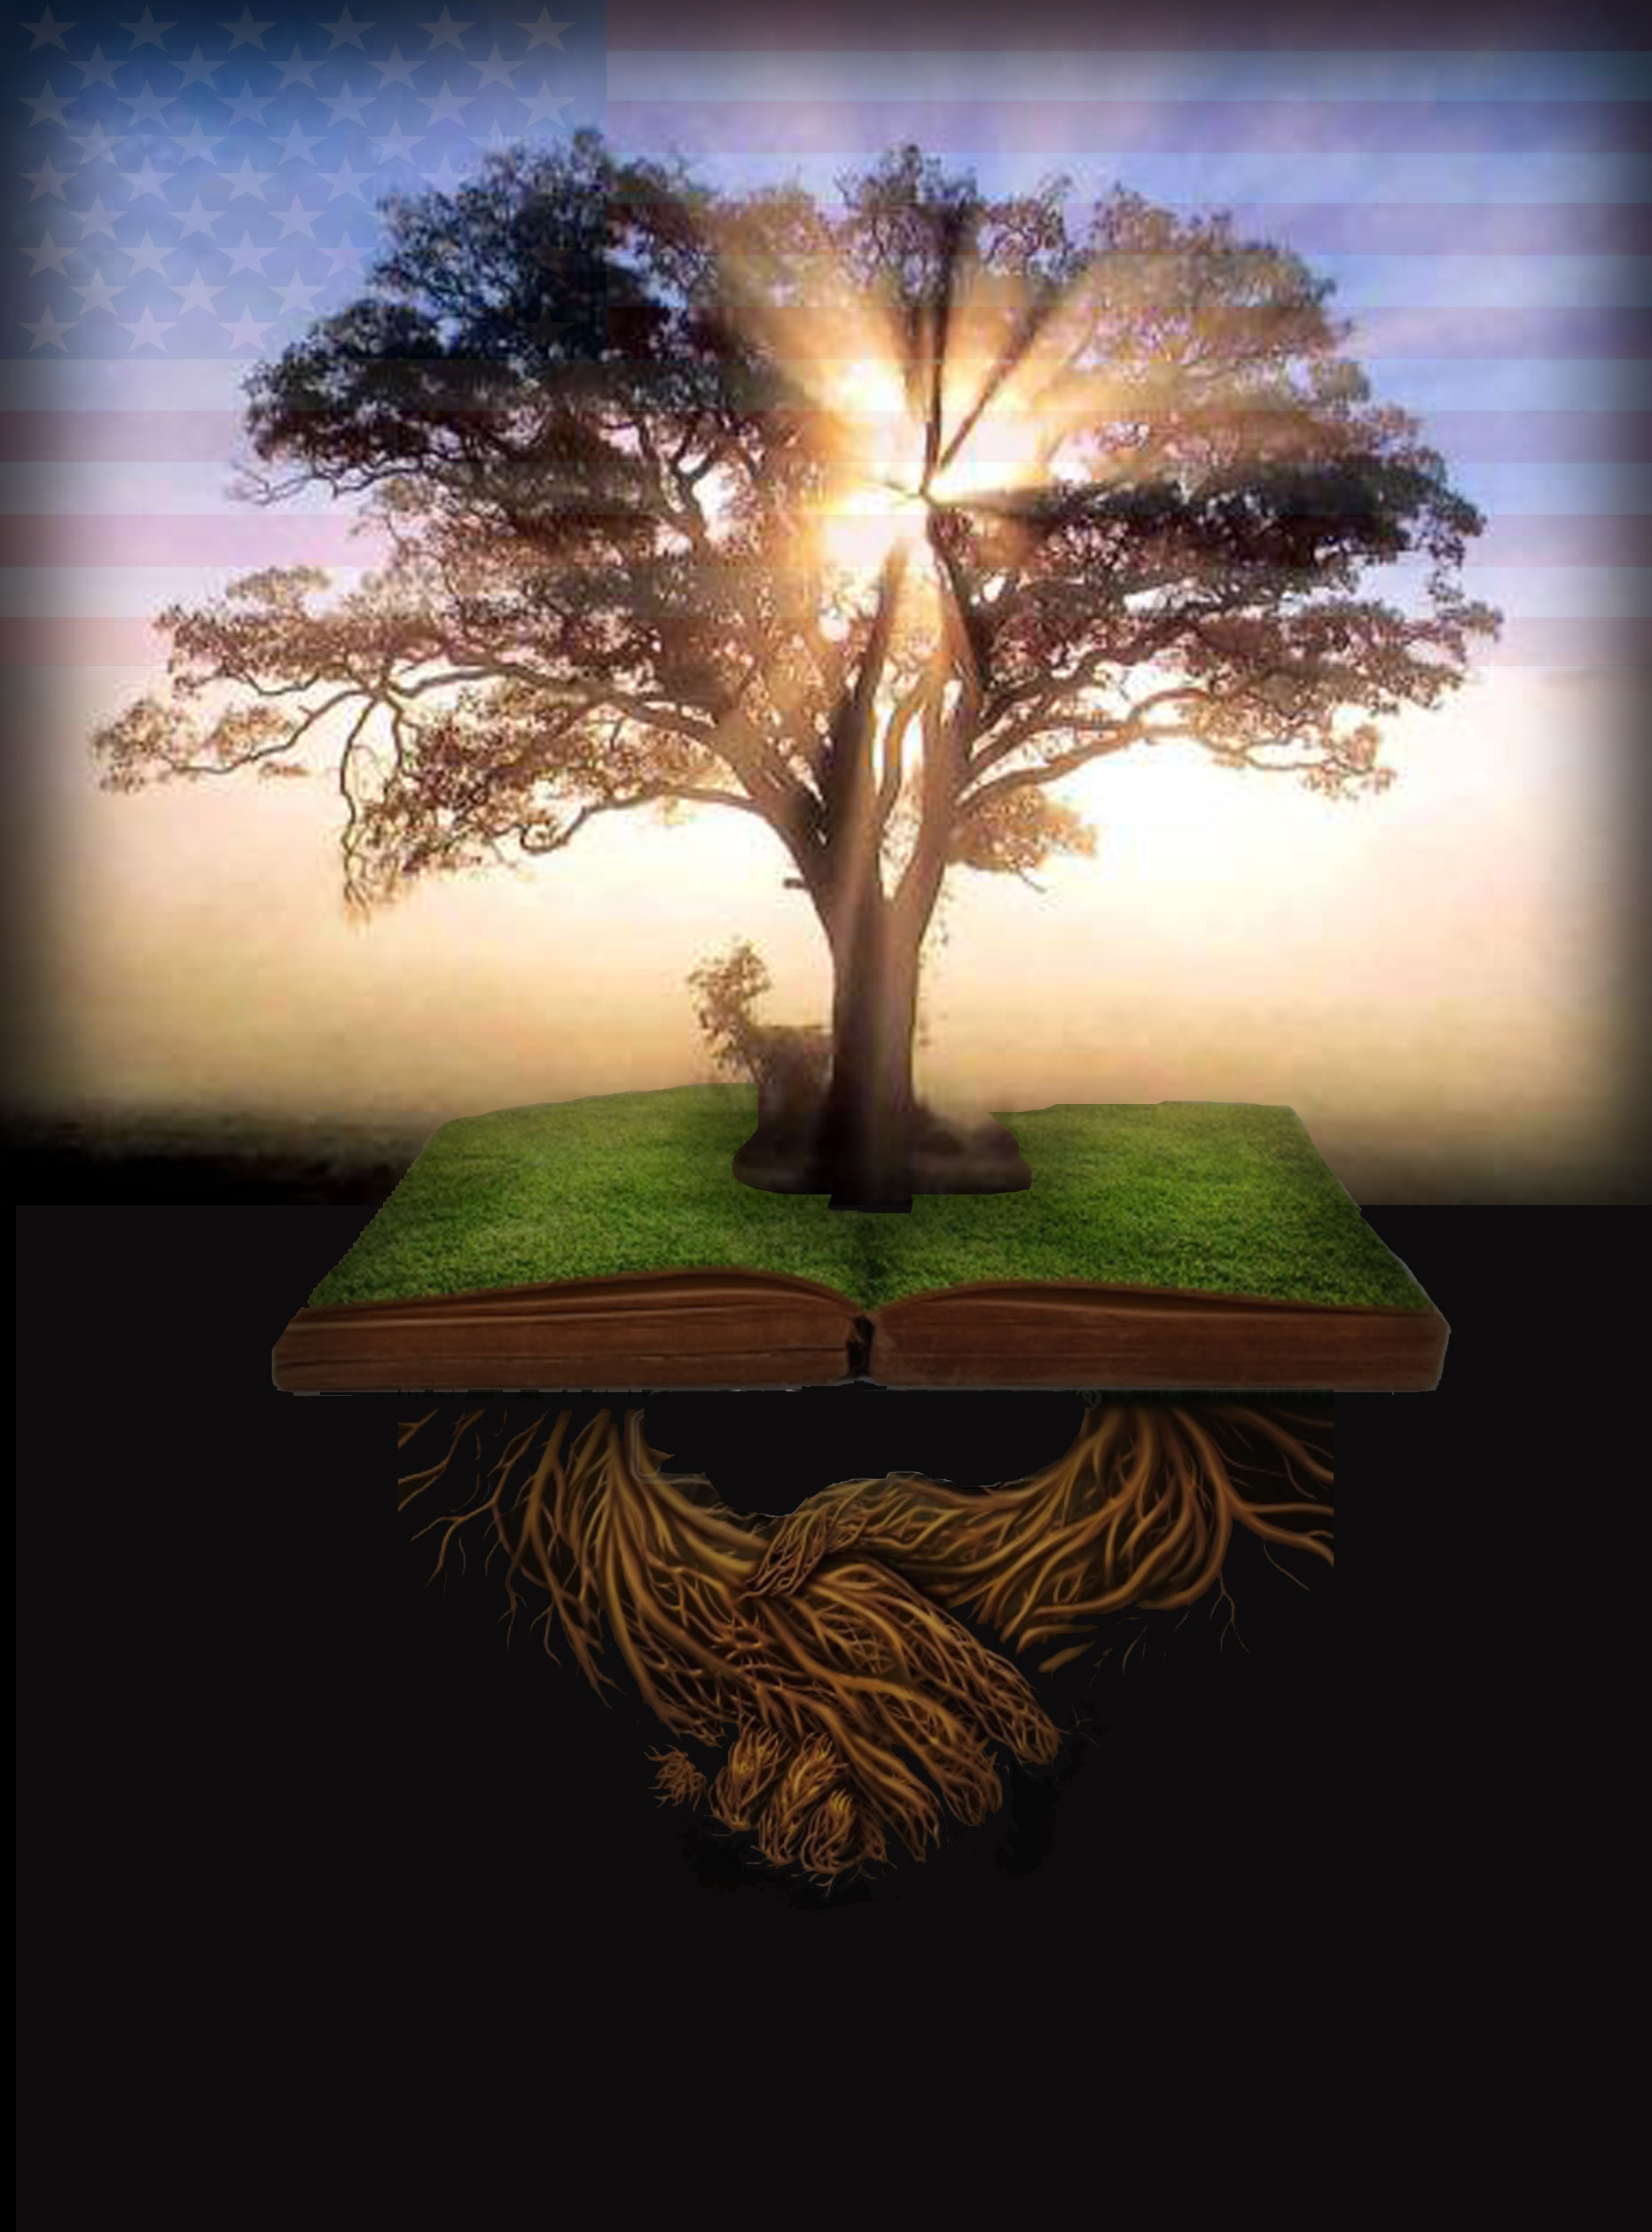 Tree, Flag, Book, Roots